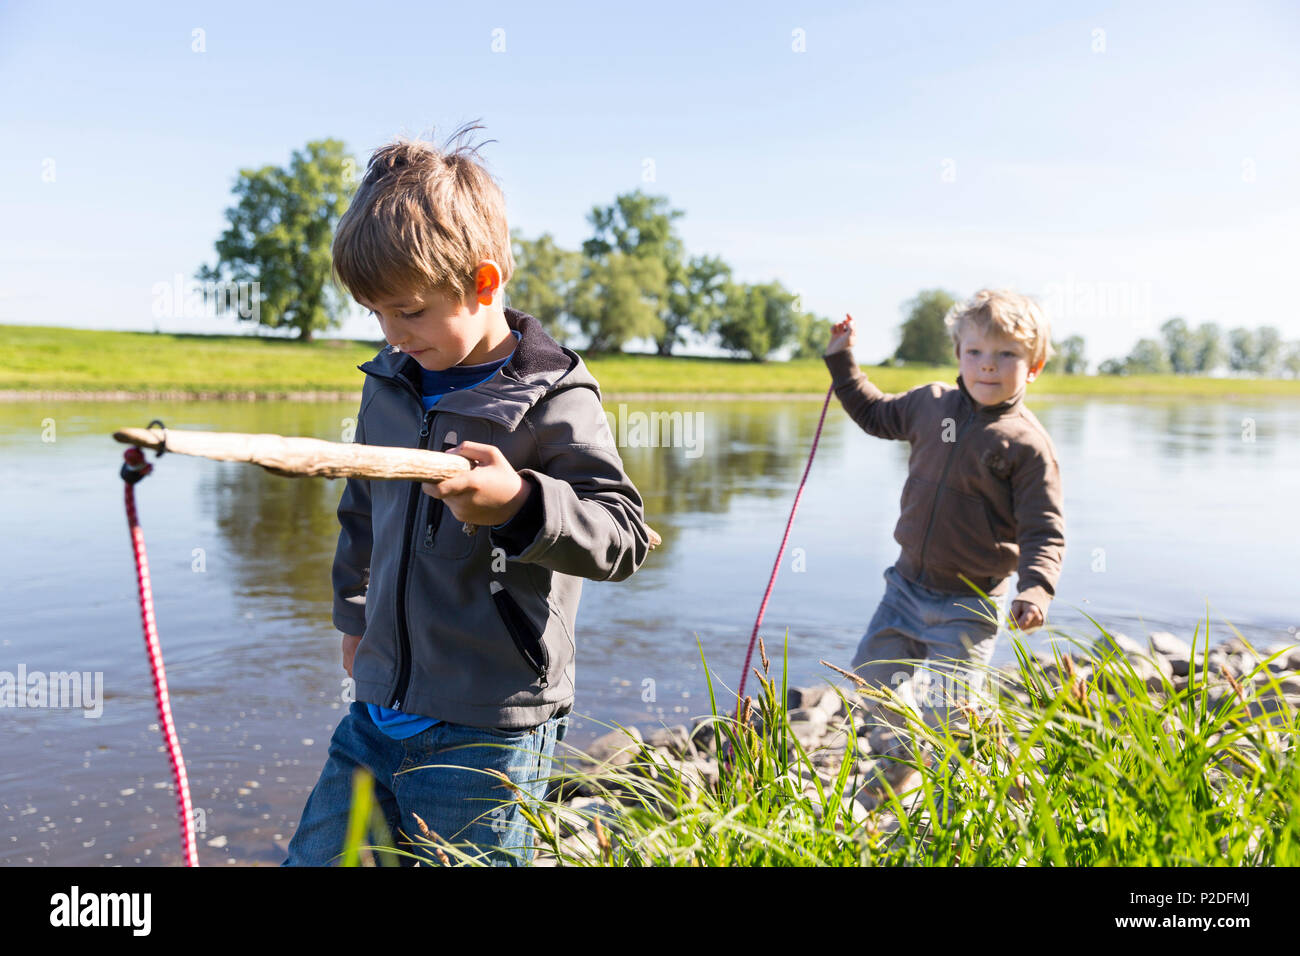 Boys fishing, Family bicycle tour along the river Elbe, adventure, from Torgau to Riesa, Saxony, Germany, Europe Stock Photo